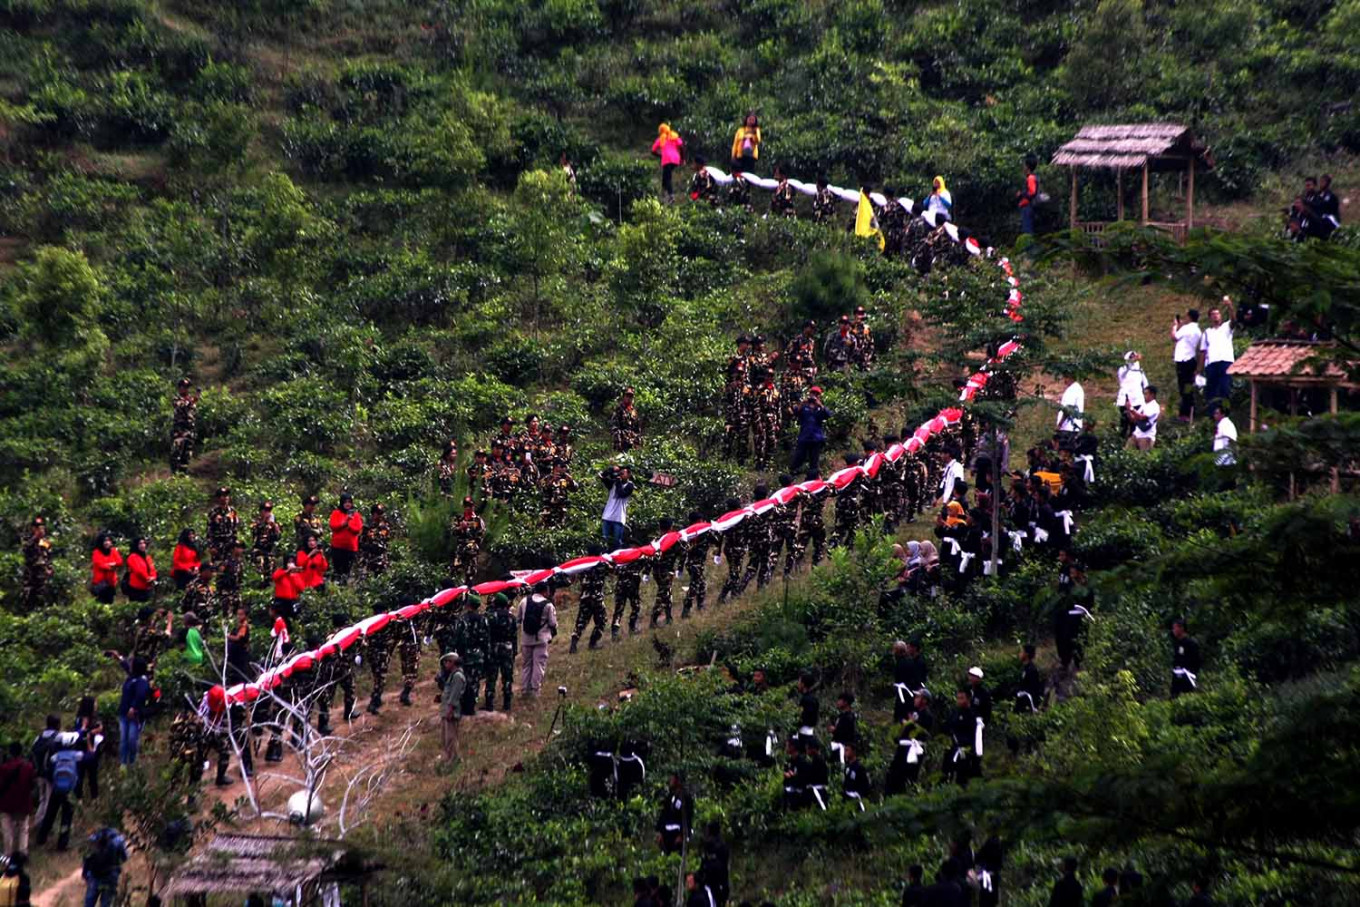 Members of Banser carry the giant flag up Sumilir valley in Karanganyar, Central Java, on Aug. 1. JP/Maksum Nur Fauzan